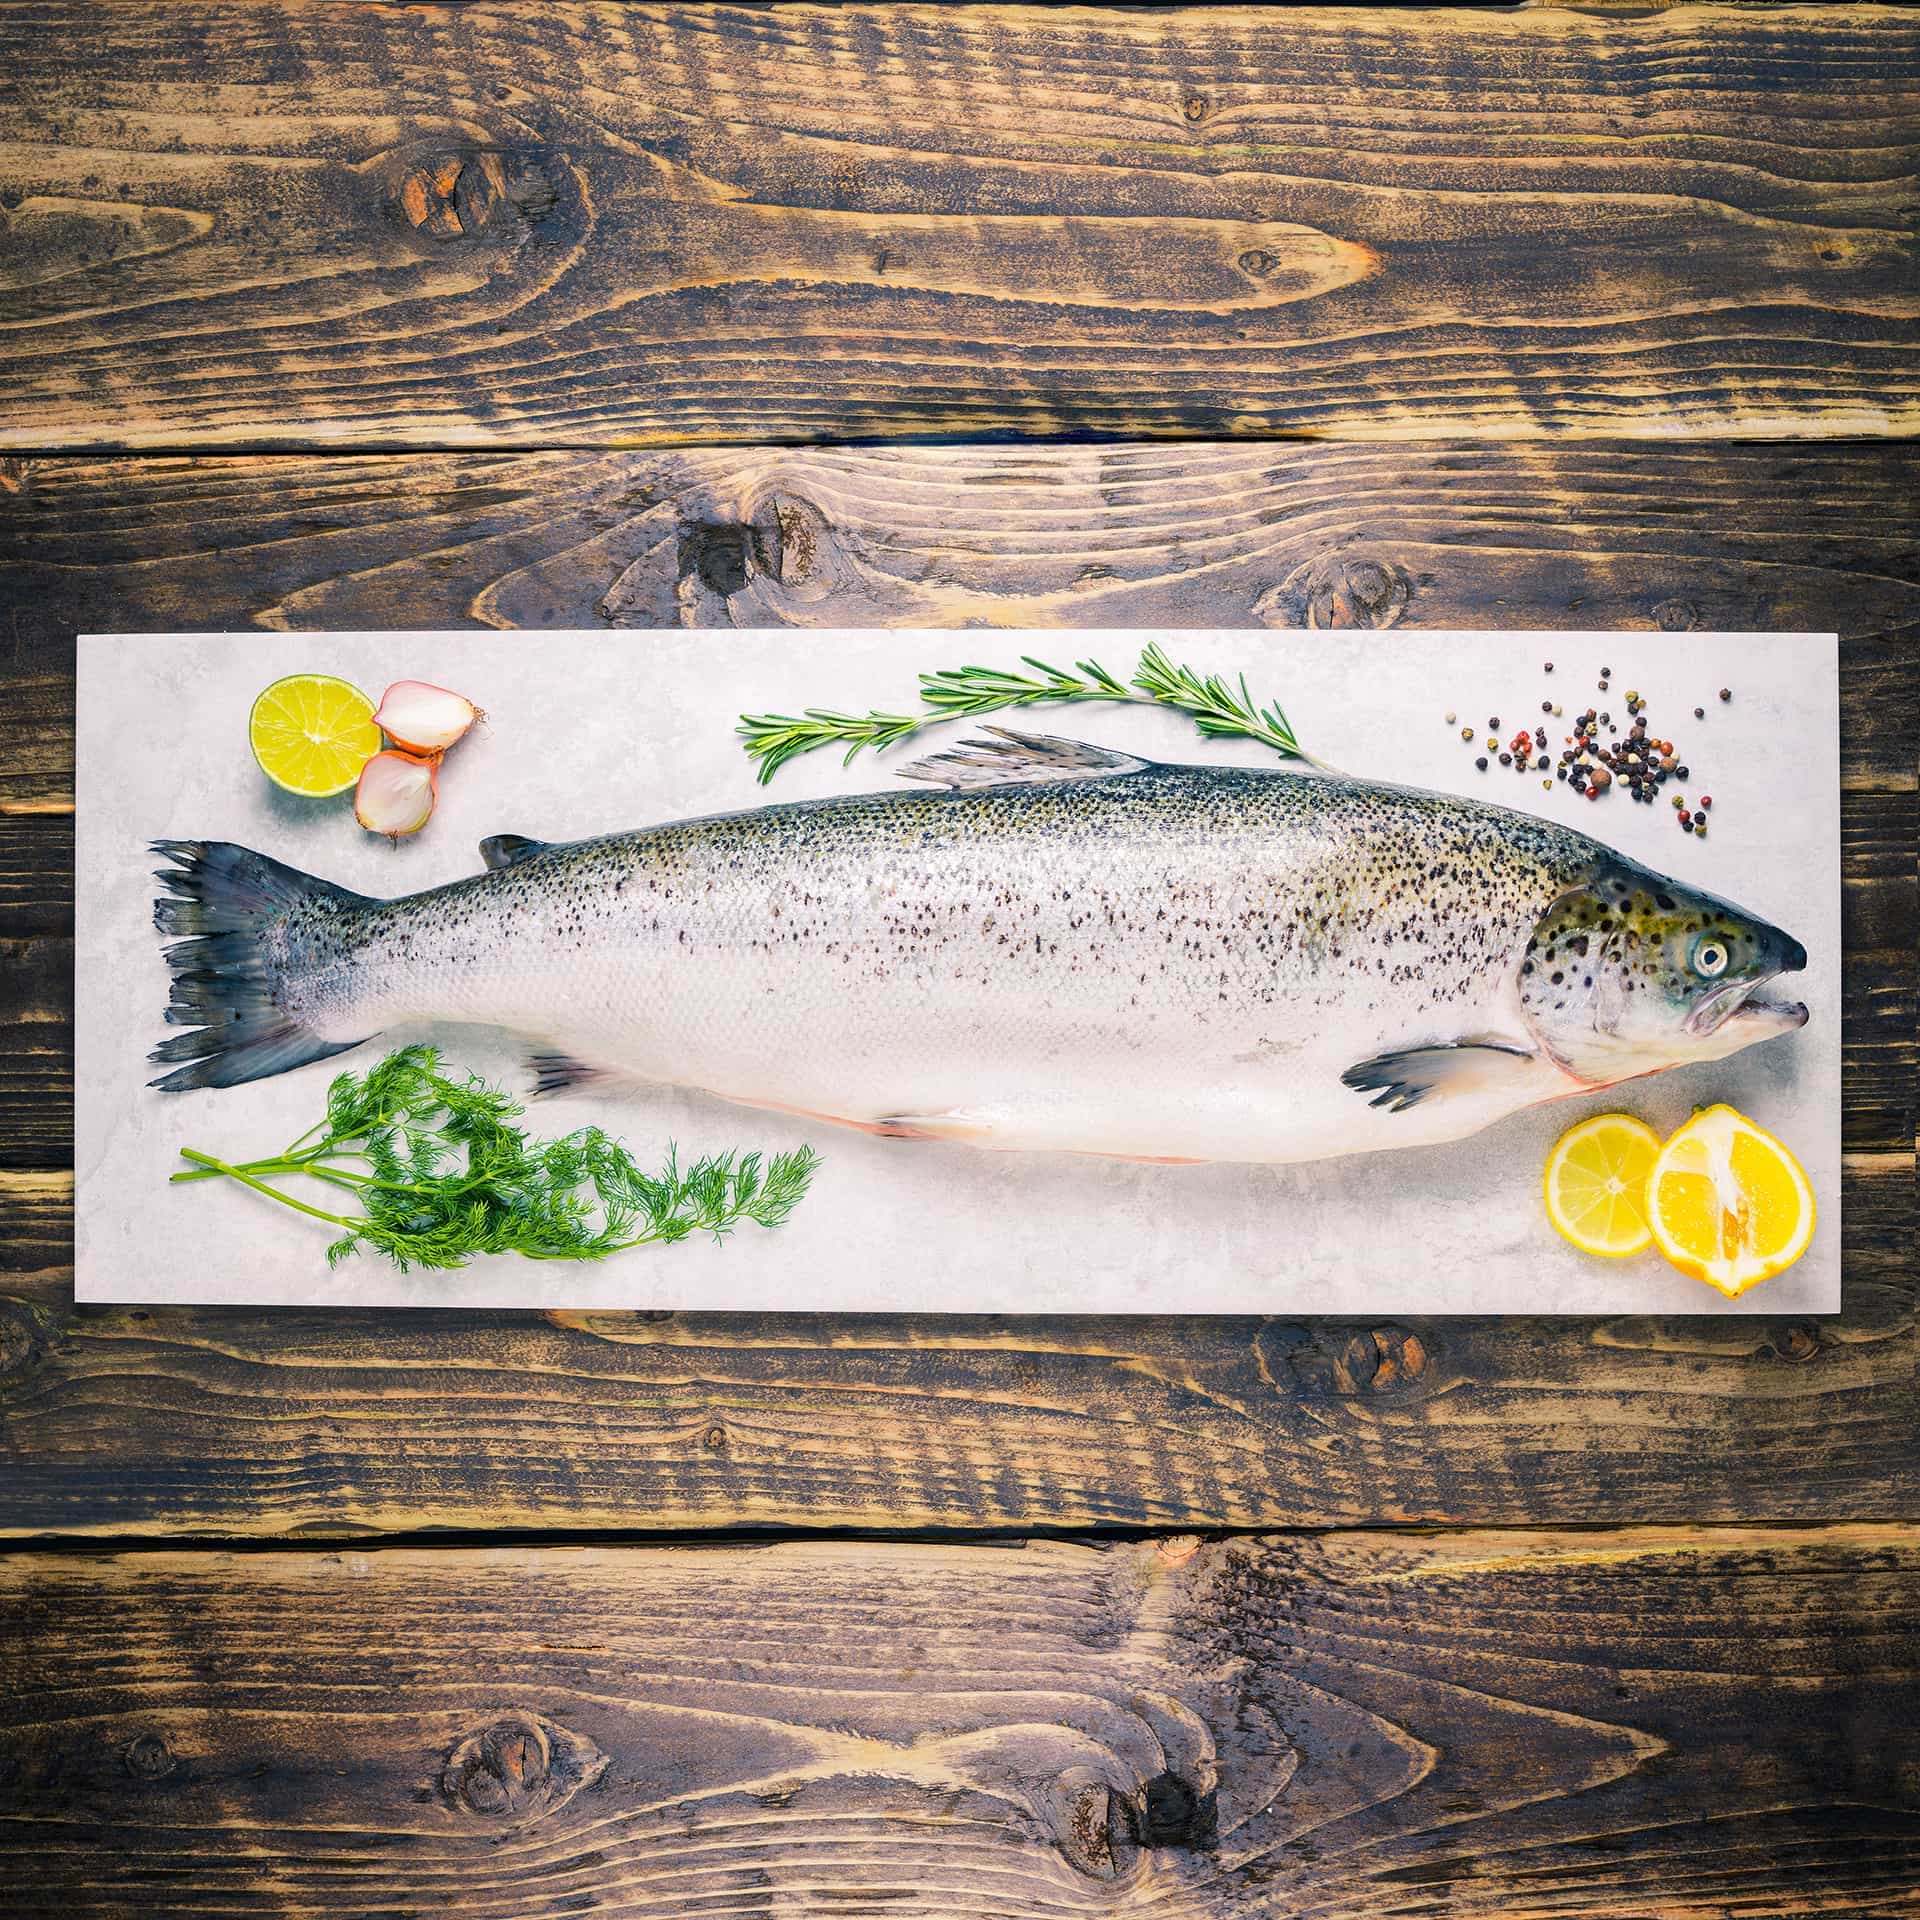 Whole salmon on a stone background